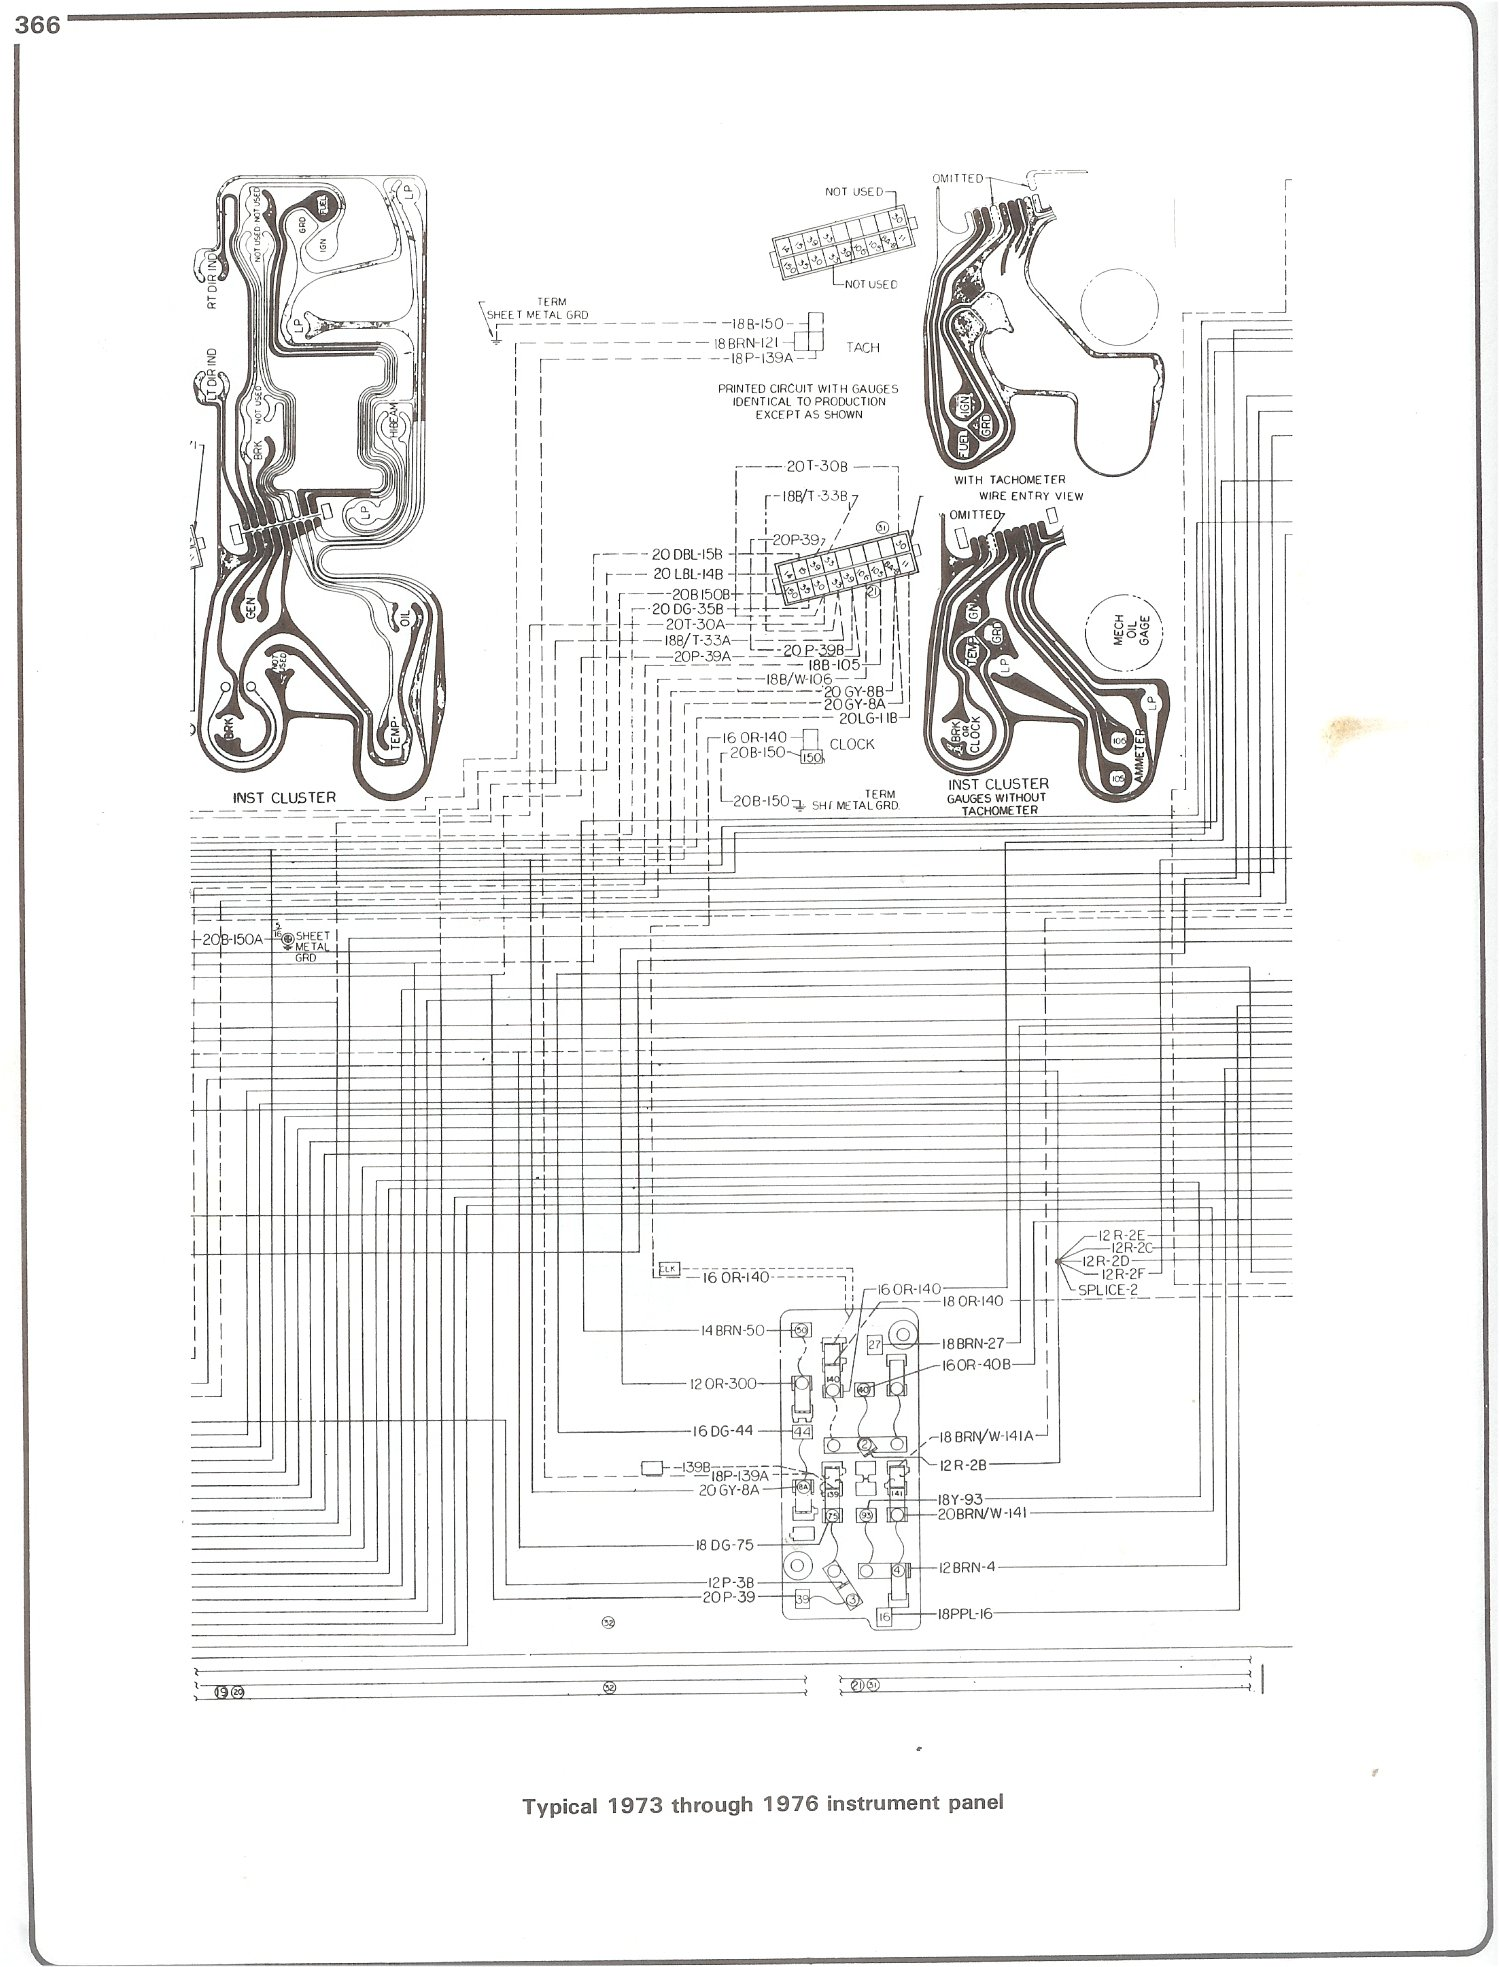 1988 gmc 1500 specs wiring heater controls wiring diagram database complete 73 87 wiring diagrams rh forum 73 87chevytrucks com 1990 gmc sierra 1500 1984 gmc publicscrutiny Choice Image